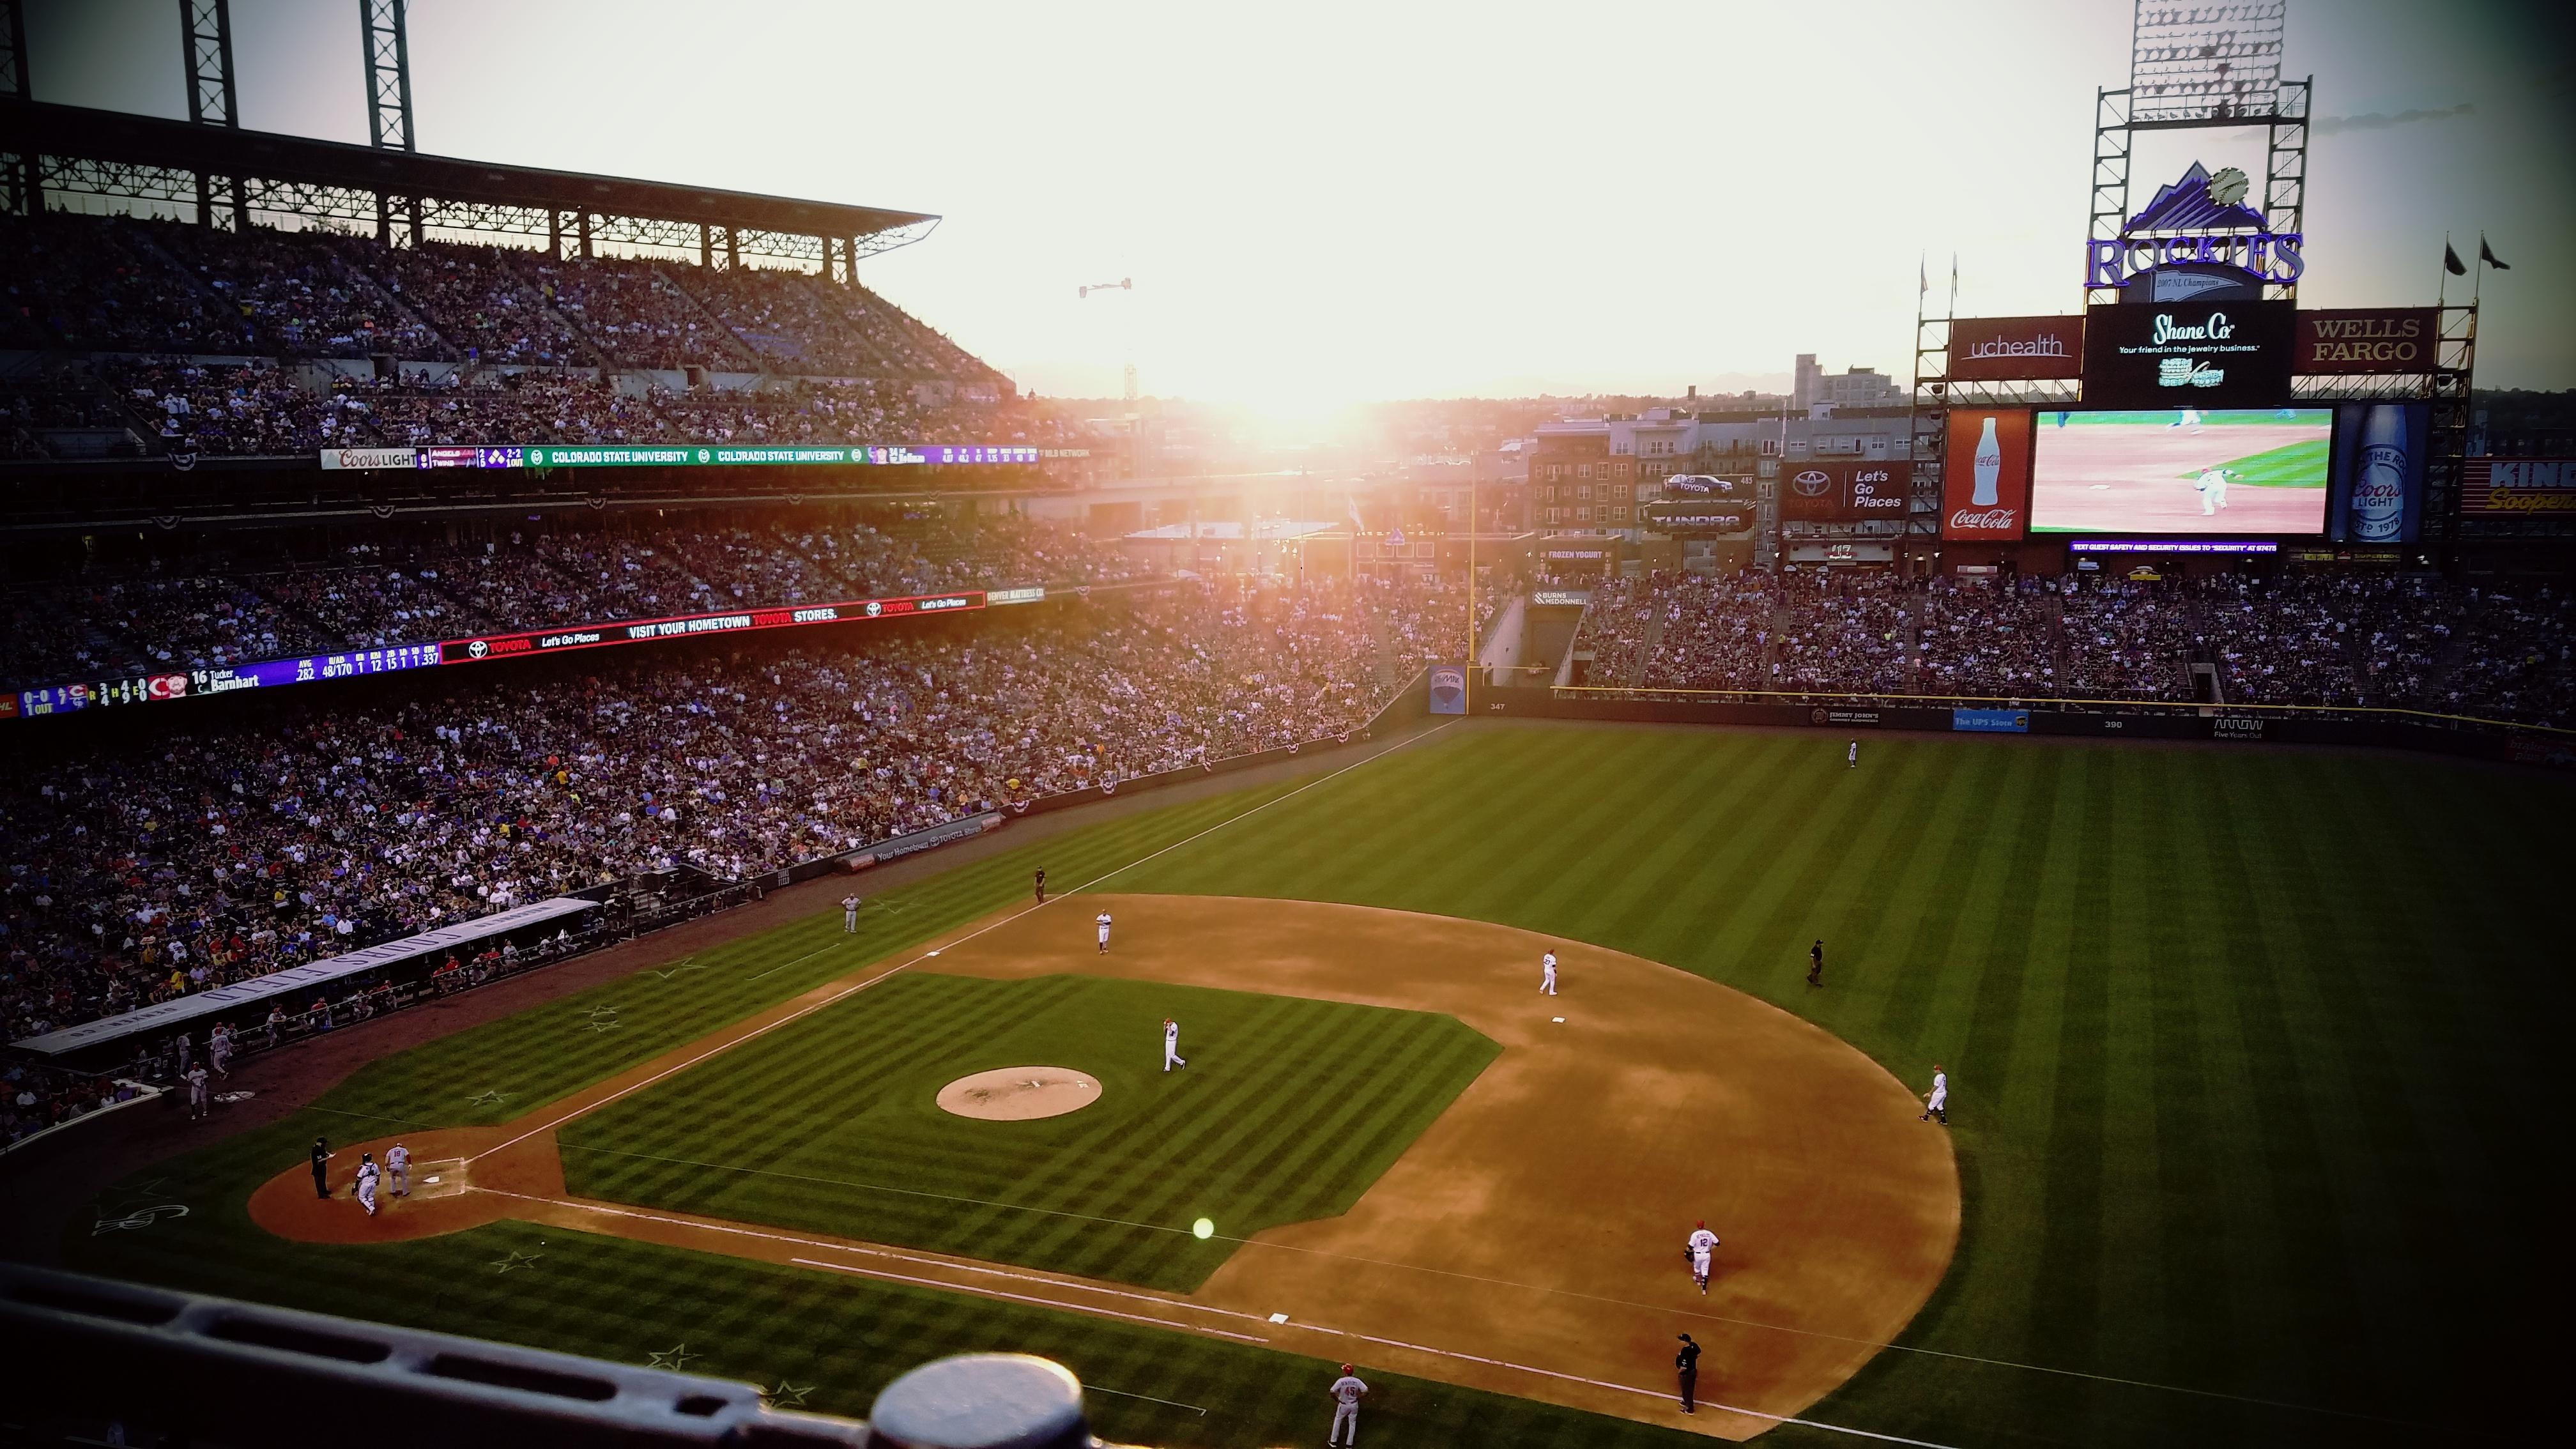 Coors Field Section L319 Row 1 Seat 21